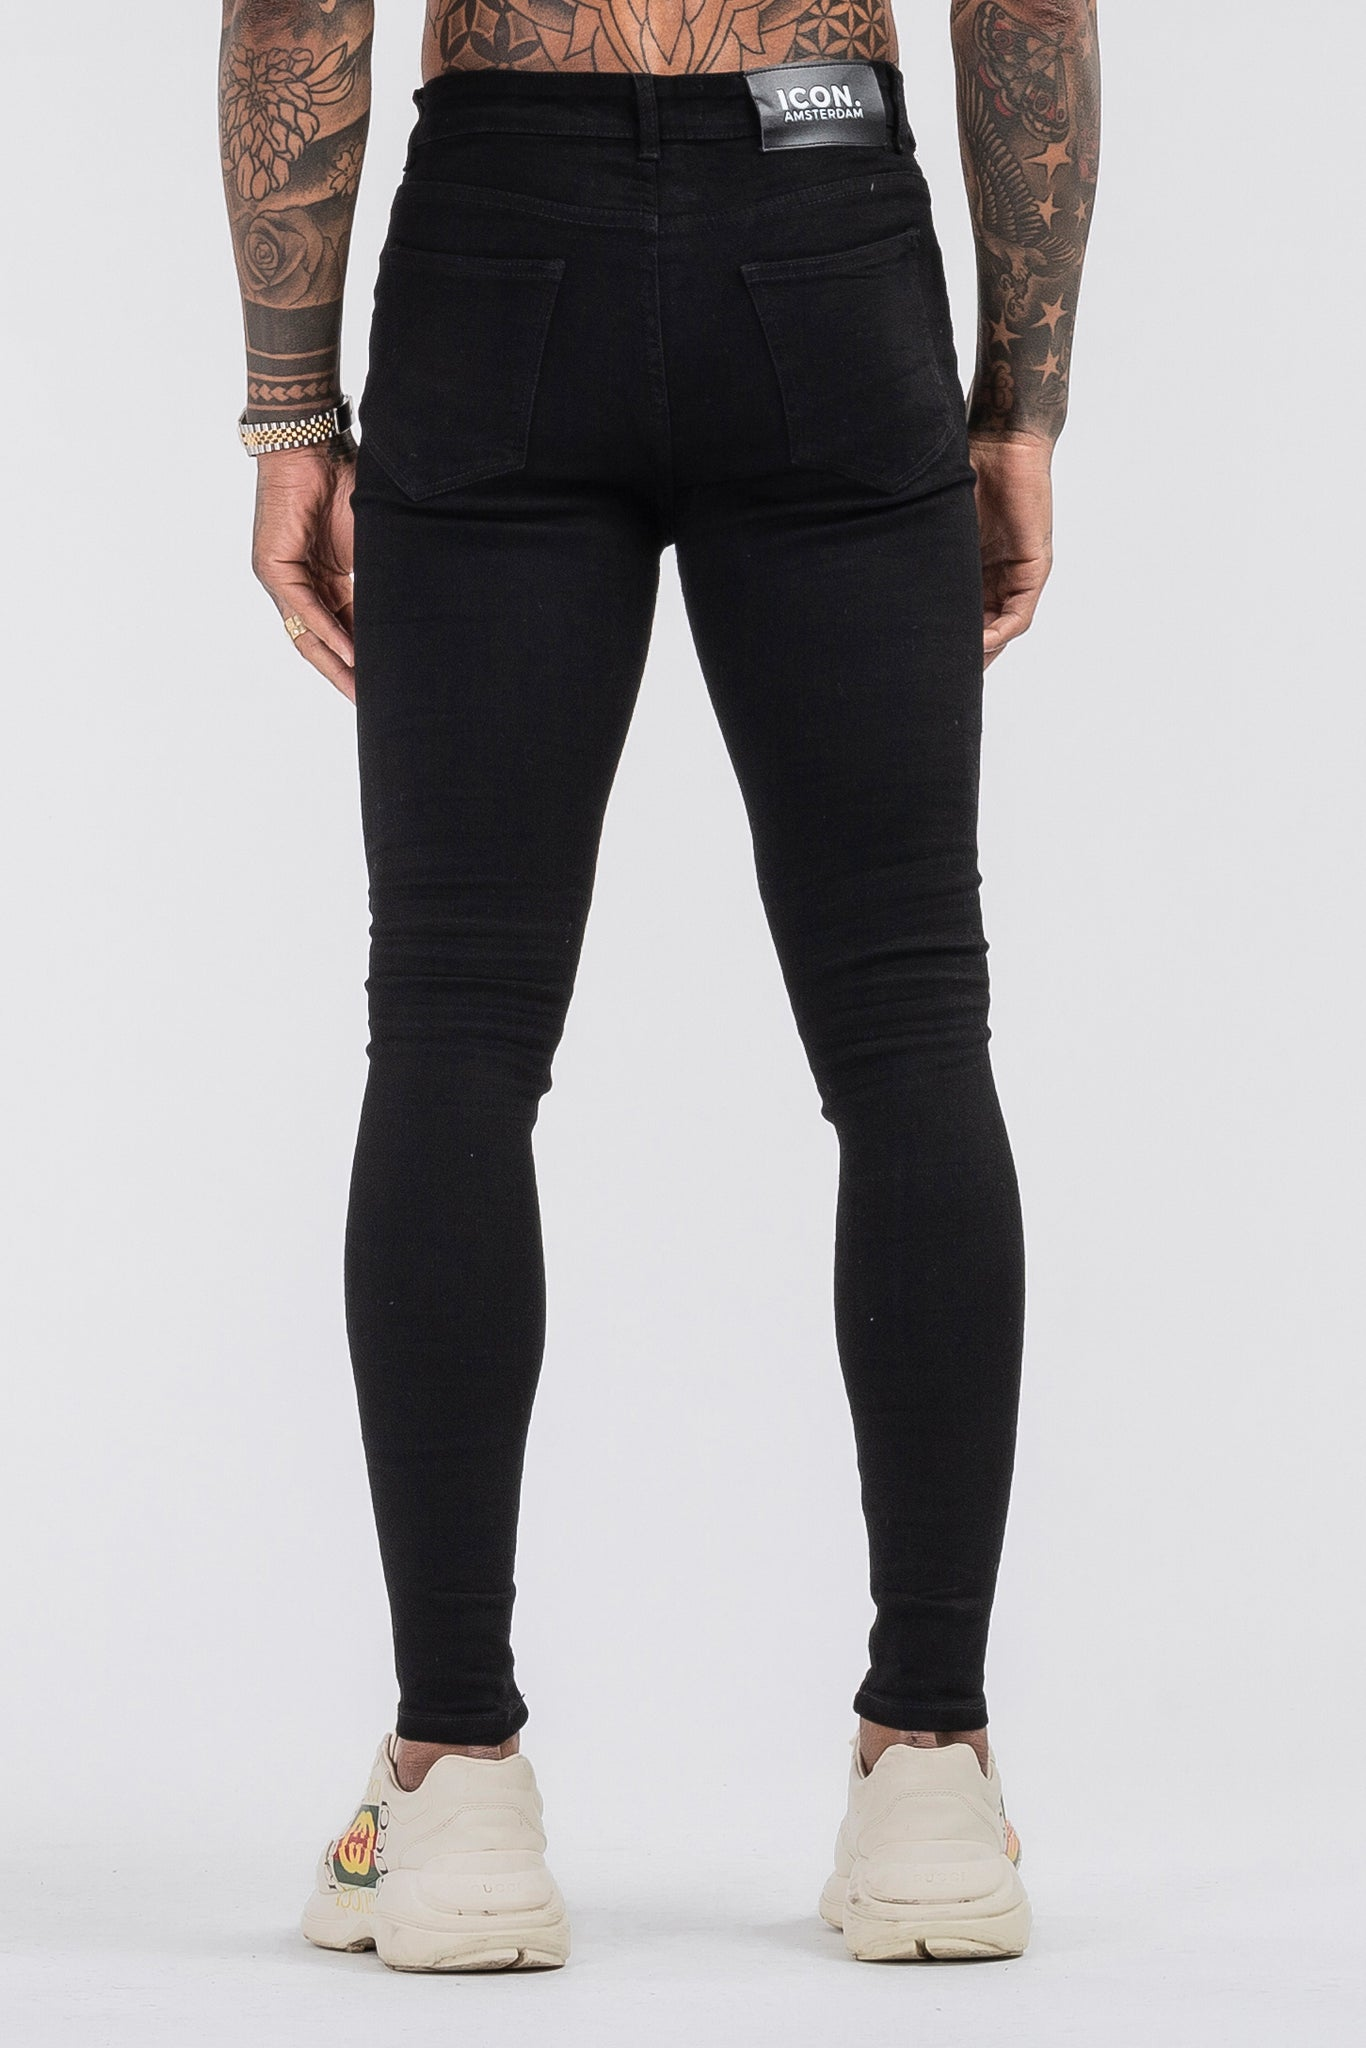 THE LORENZO JEANS - BLACK